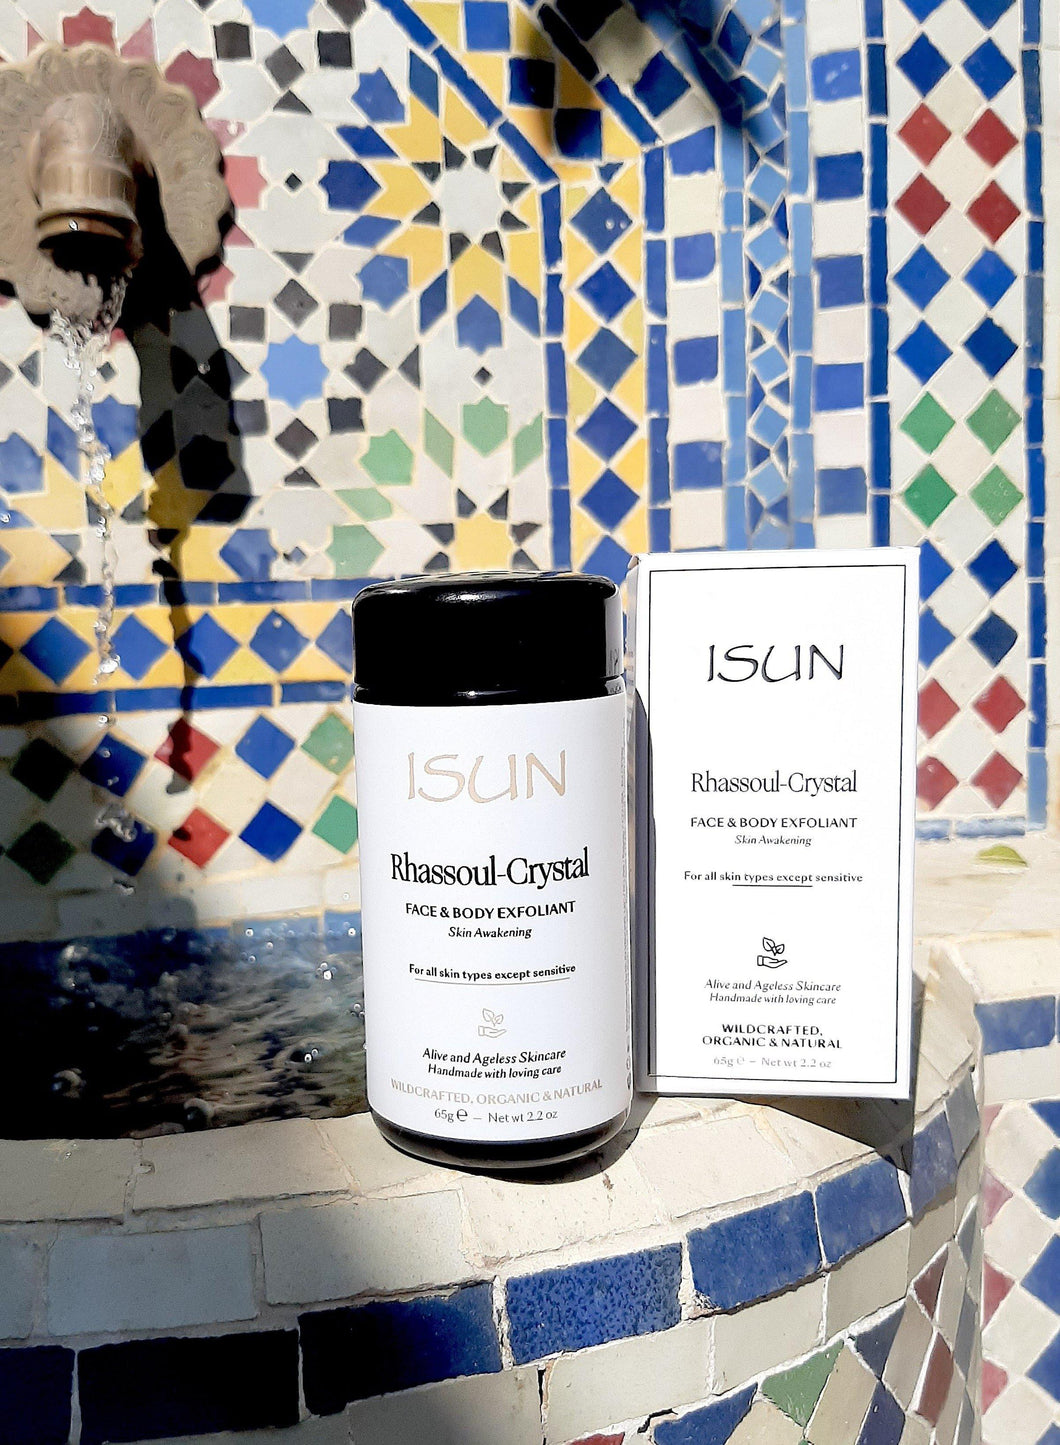 ISUN Rhassoul Crystal Face & Body Exfoliant - Carasoin